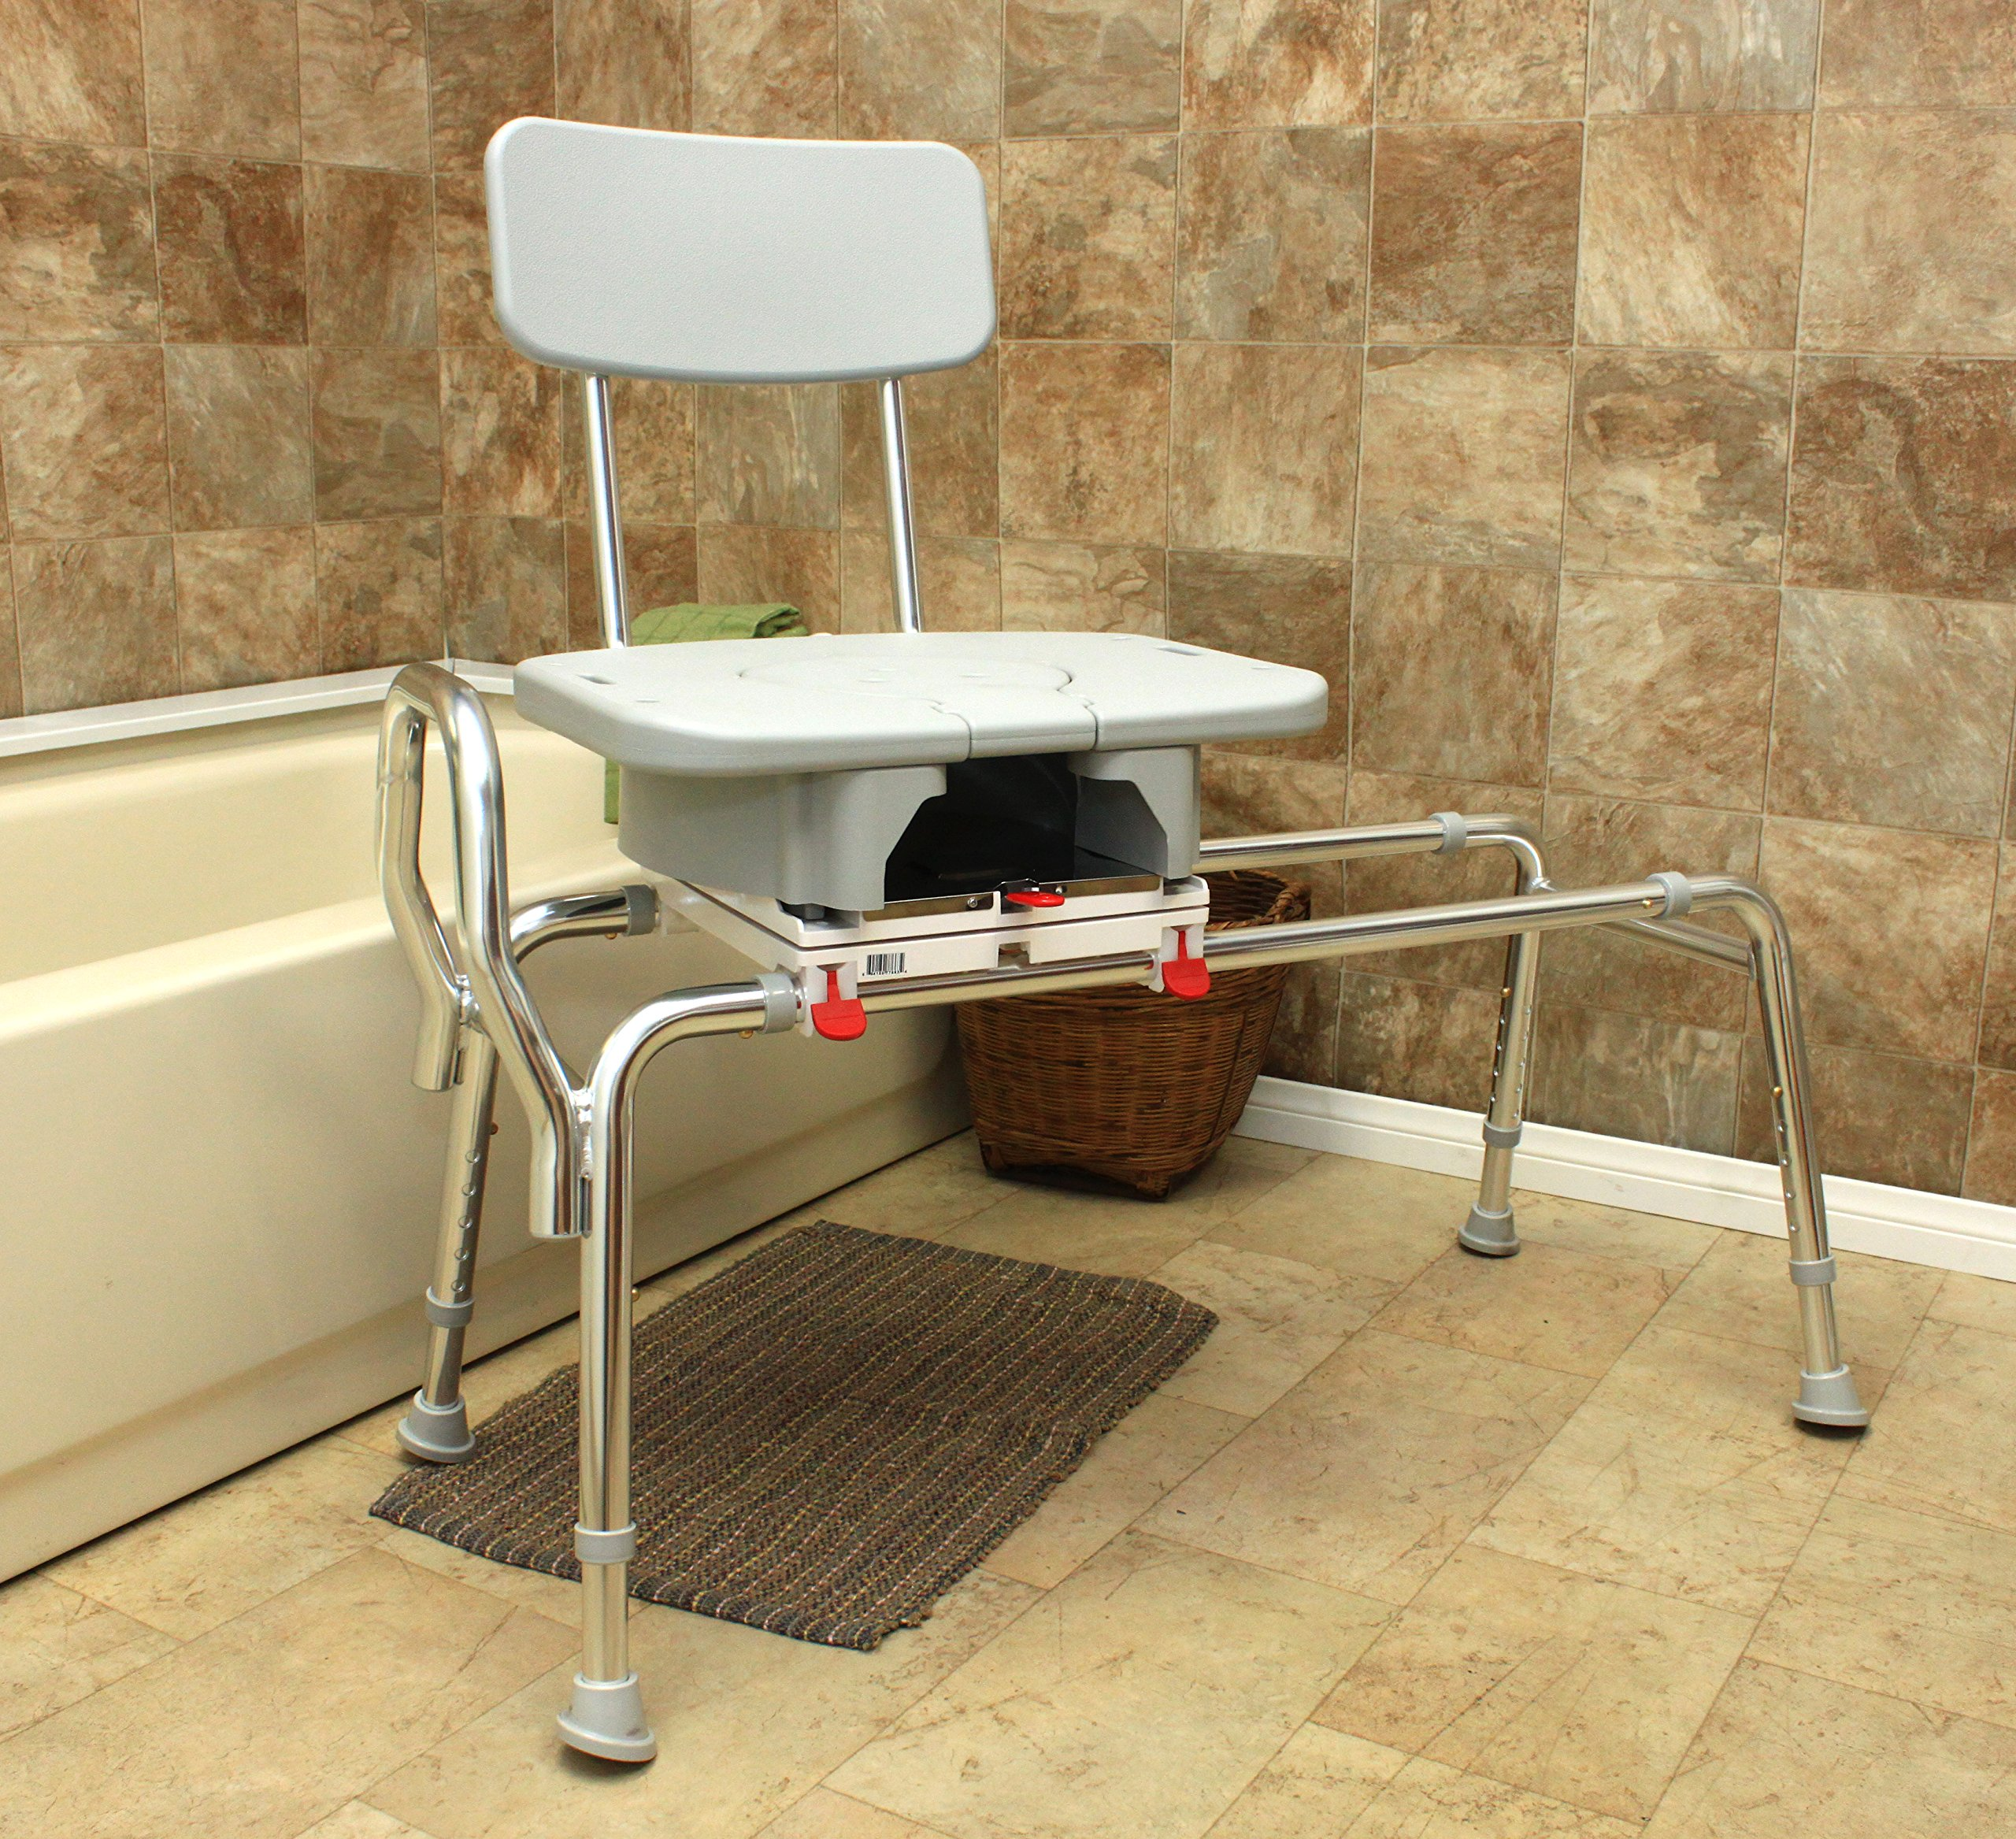 Swivel Sliding Bath Transfer Bench with Replaceable Cut-Out Seat (77683) - Long (Base Length: 43'' - 44'') - Heavy-Duty Shower Bathtub Chair - Eagle Health Supplies by Eagle Health Supplies (Image #4)